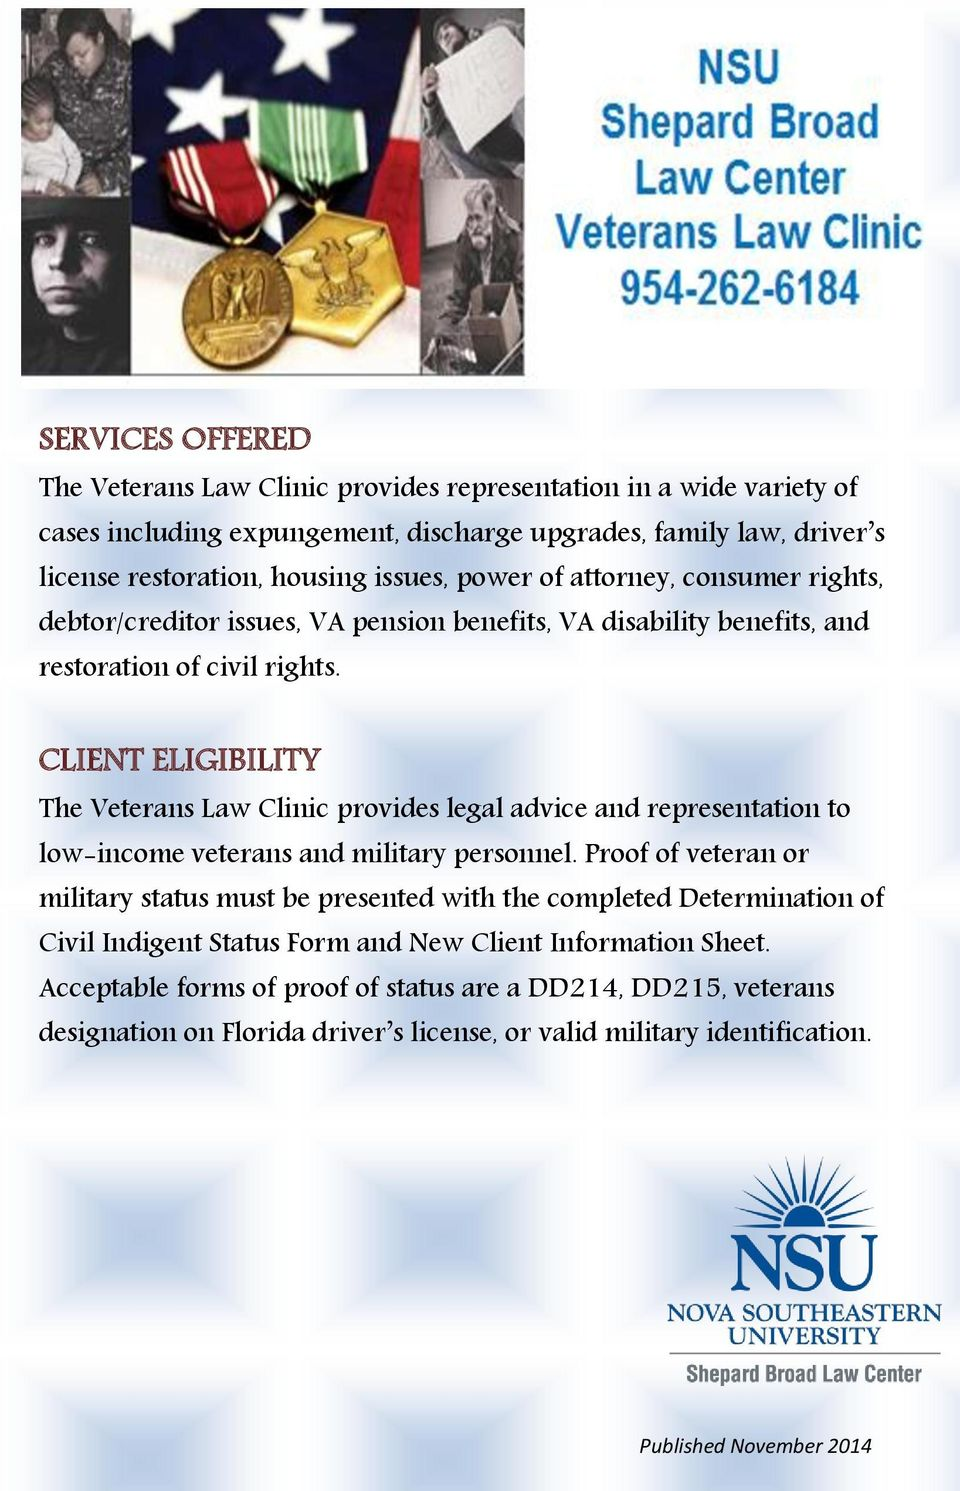 CLIENT ELIGIBILITY The Veterans Law Clinic provides legal advice and representation to low-income veterans and military personnel.